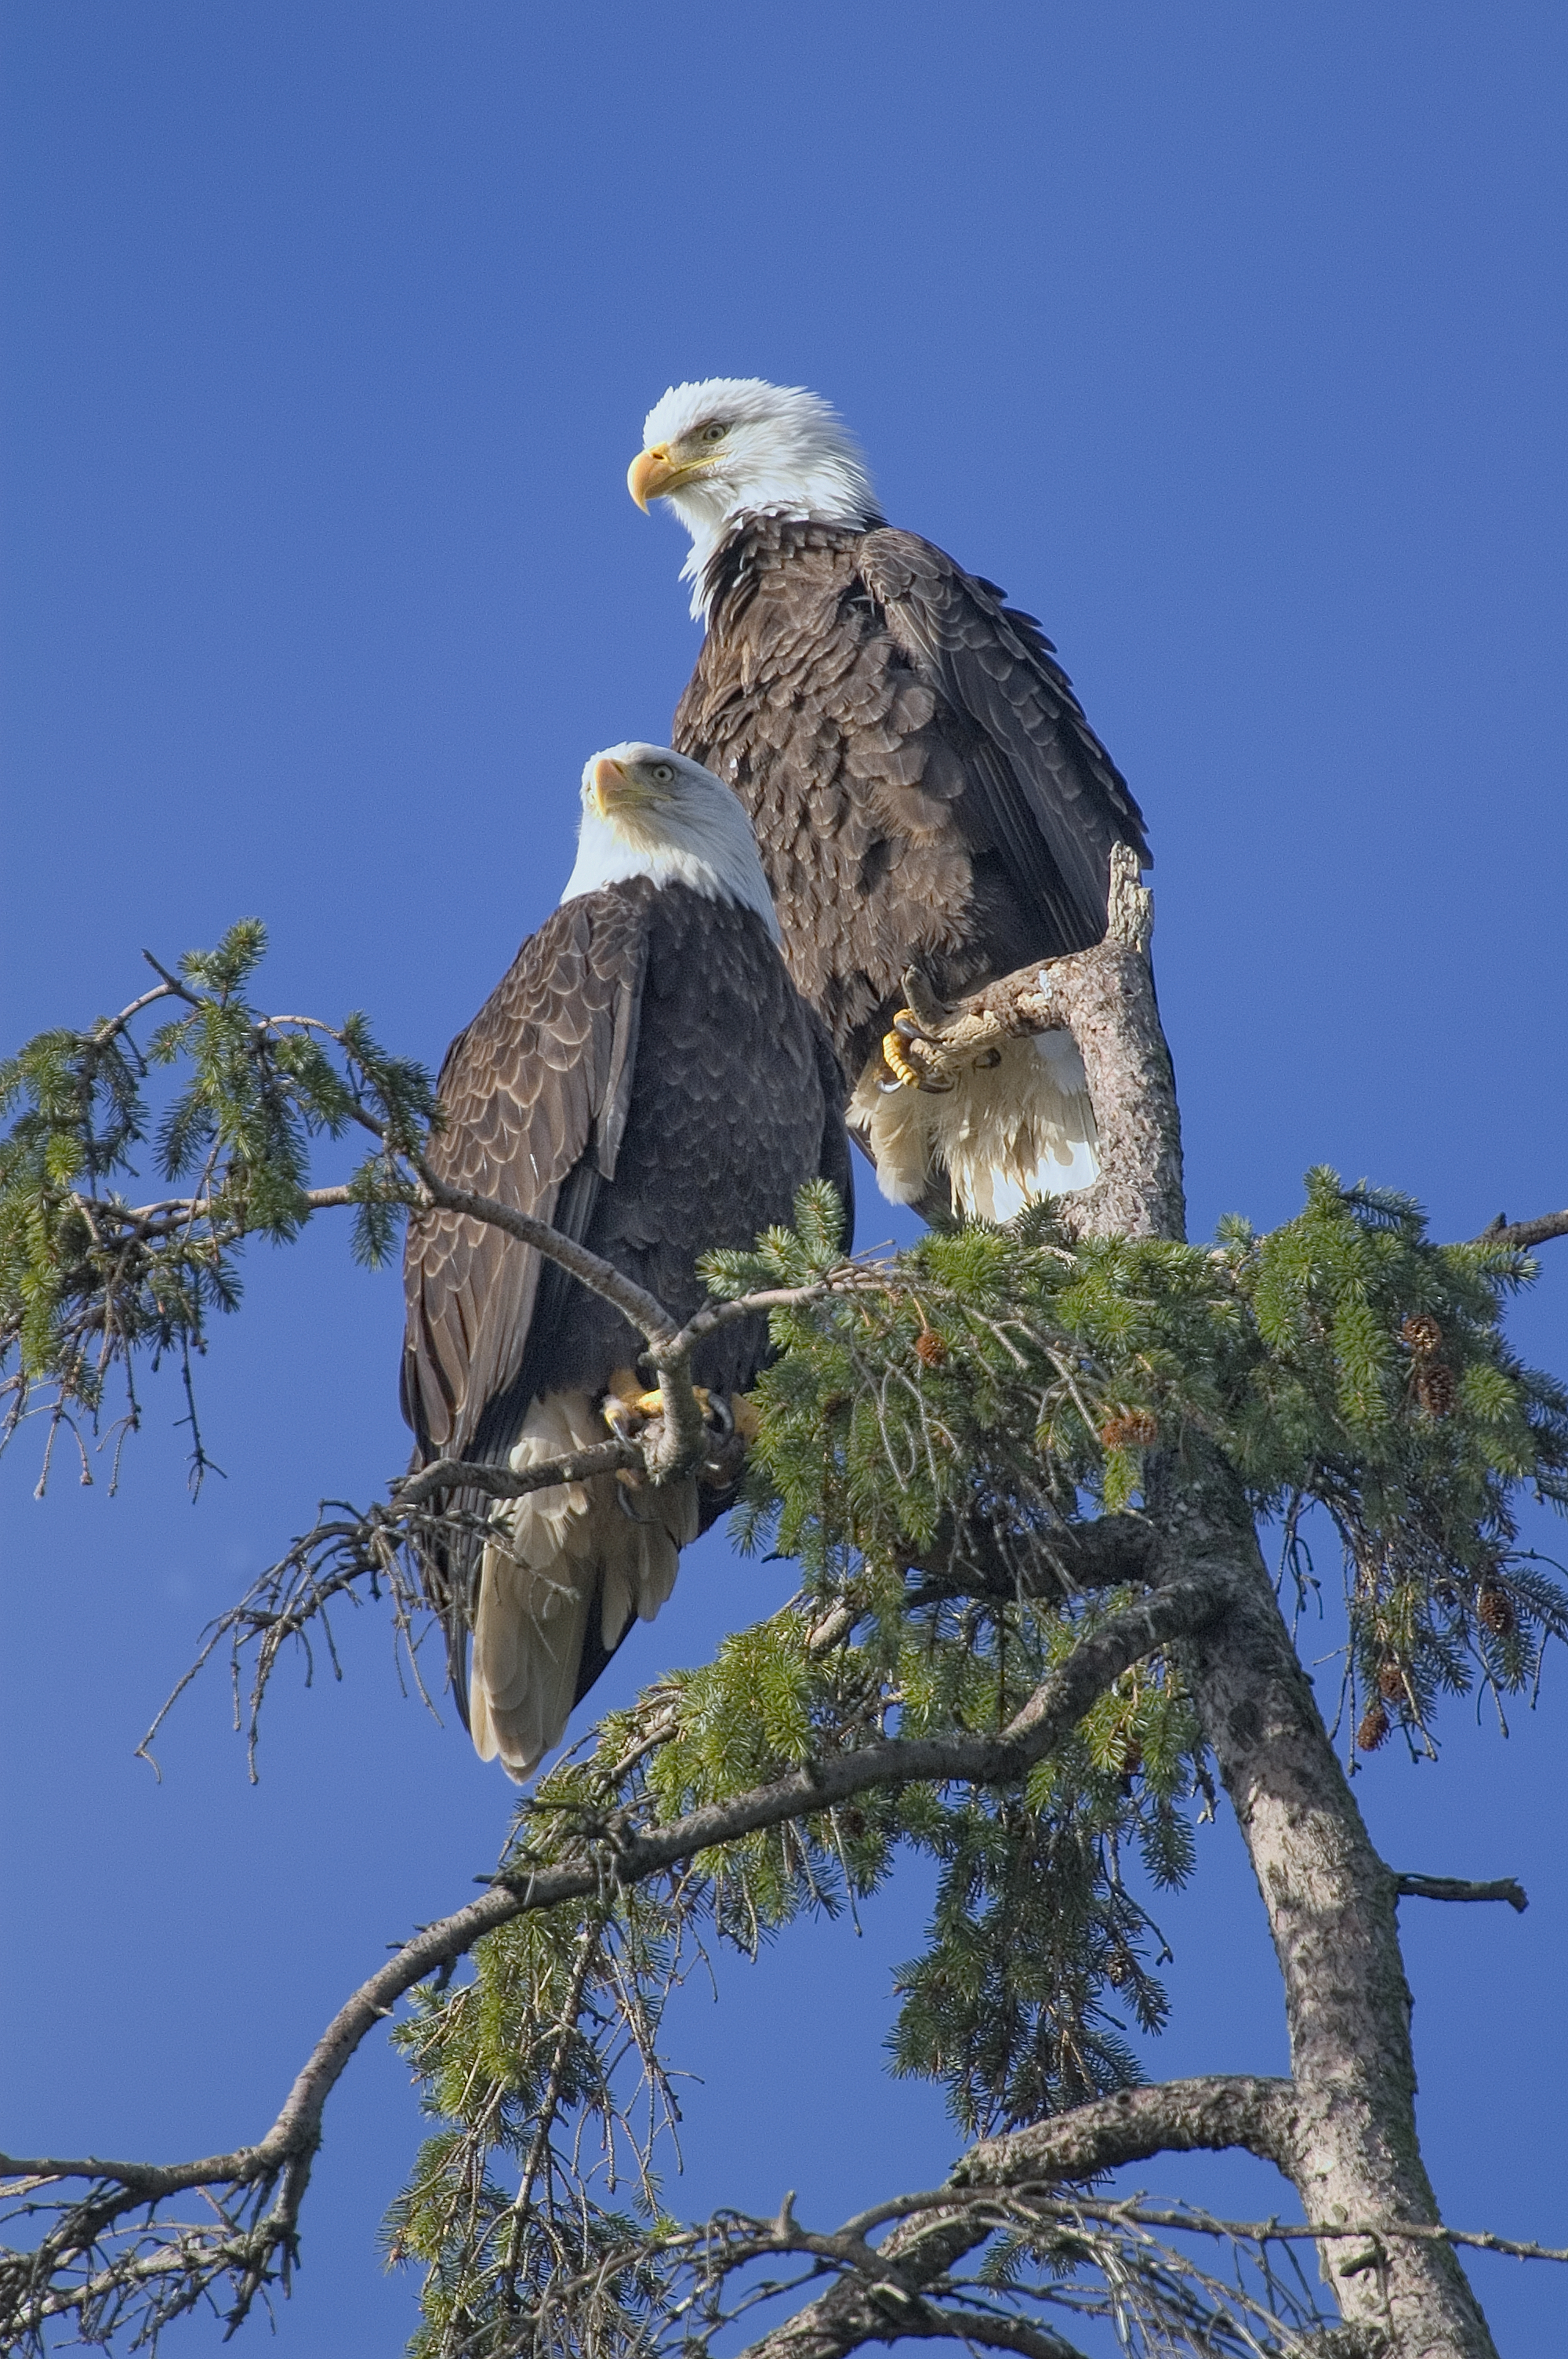 Two bald eagles sitting on top of a tree